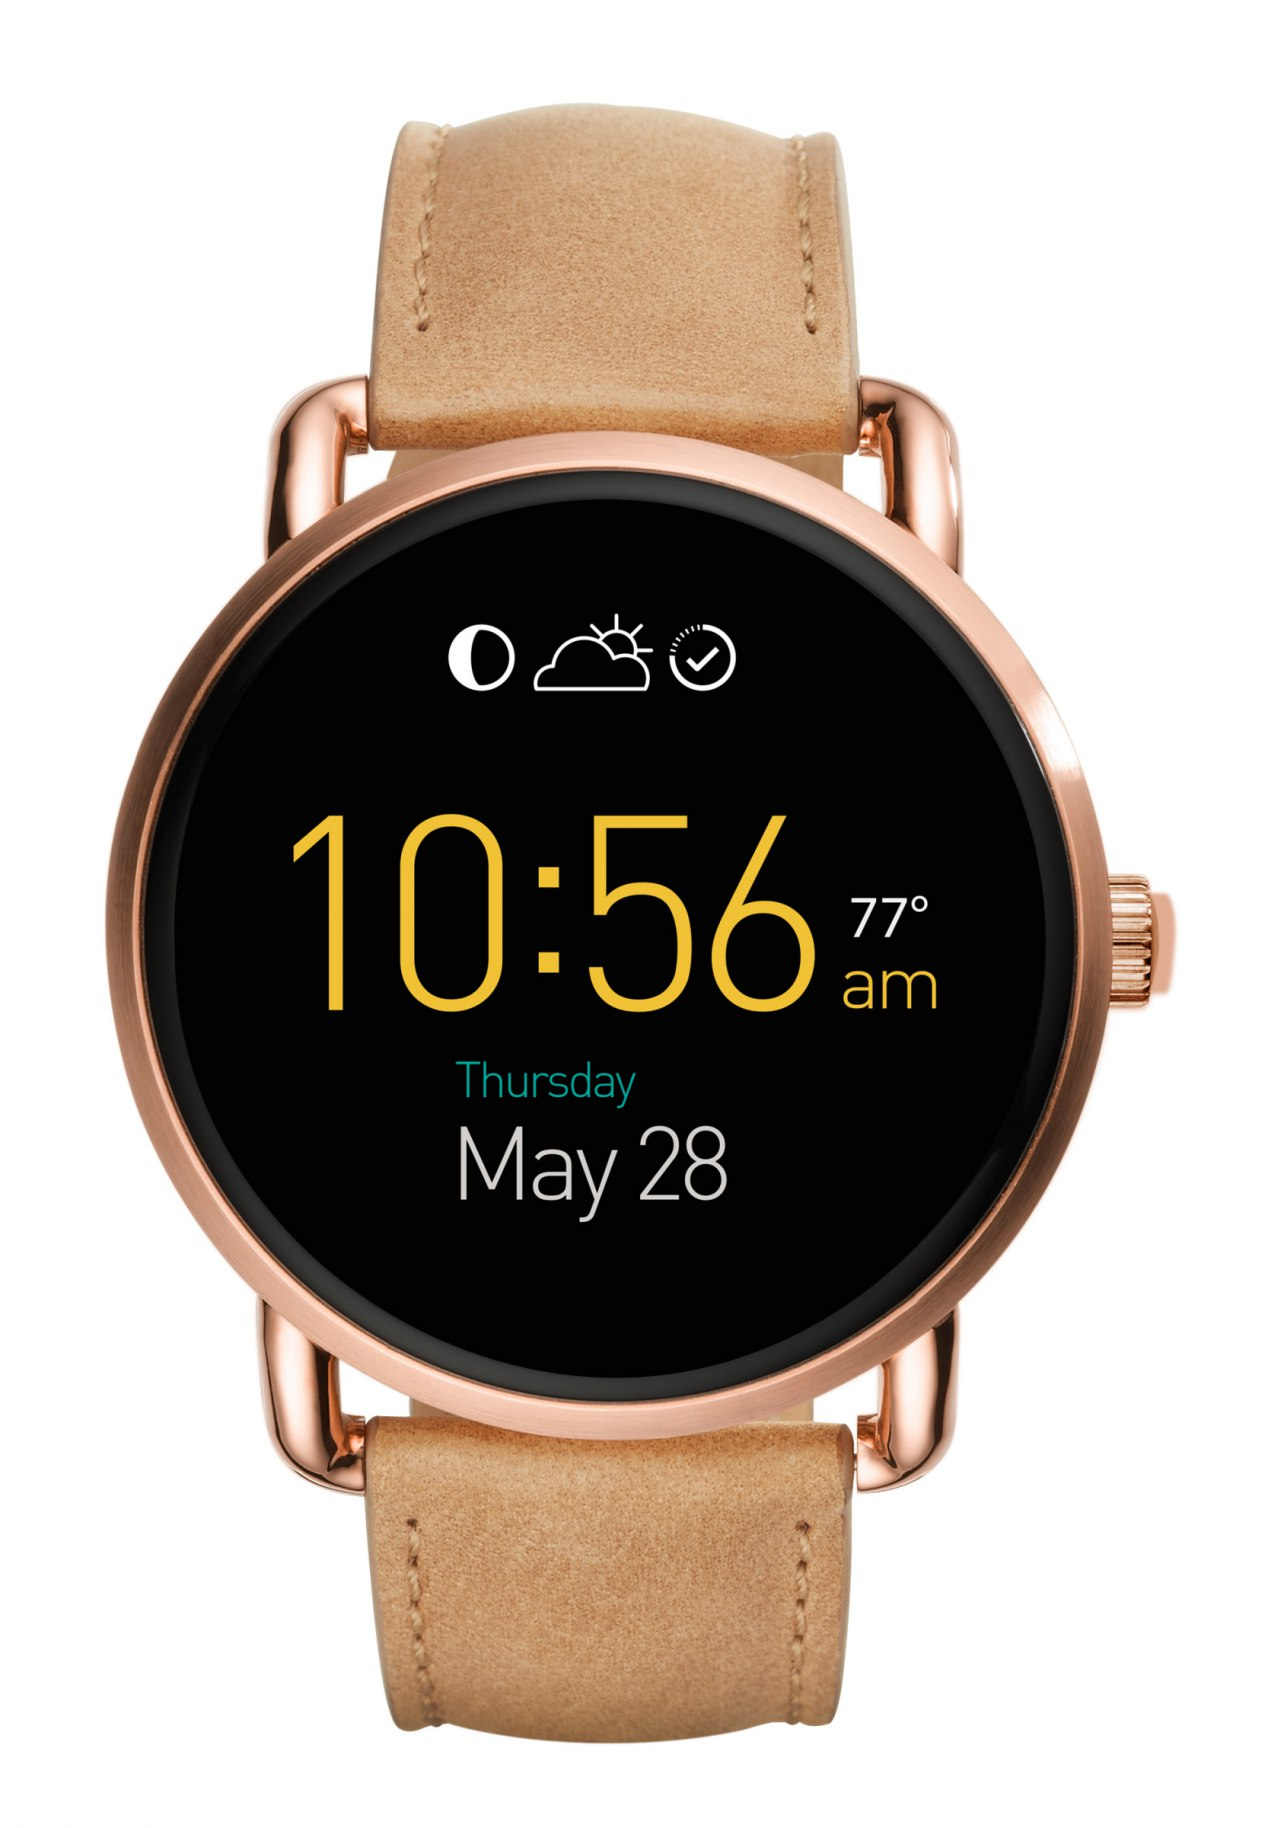 Orologio Smartwatch donna Fossil Q Founder - FTW2102